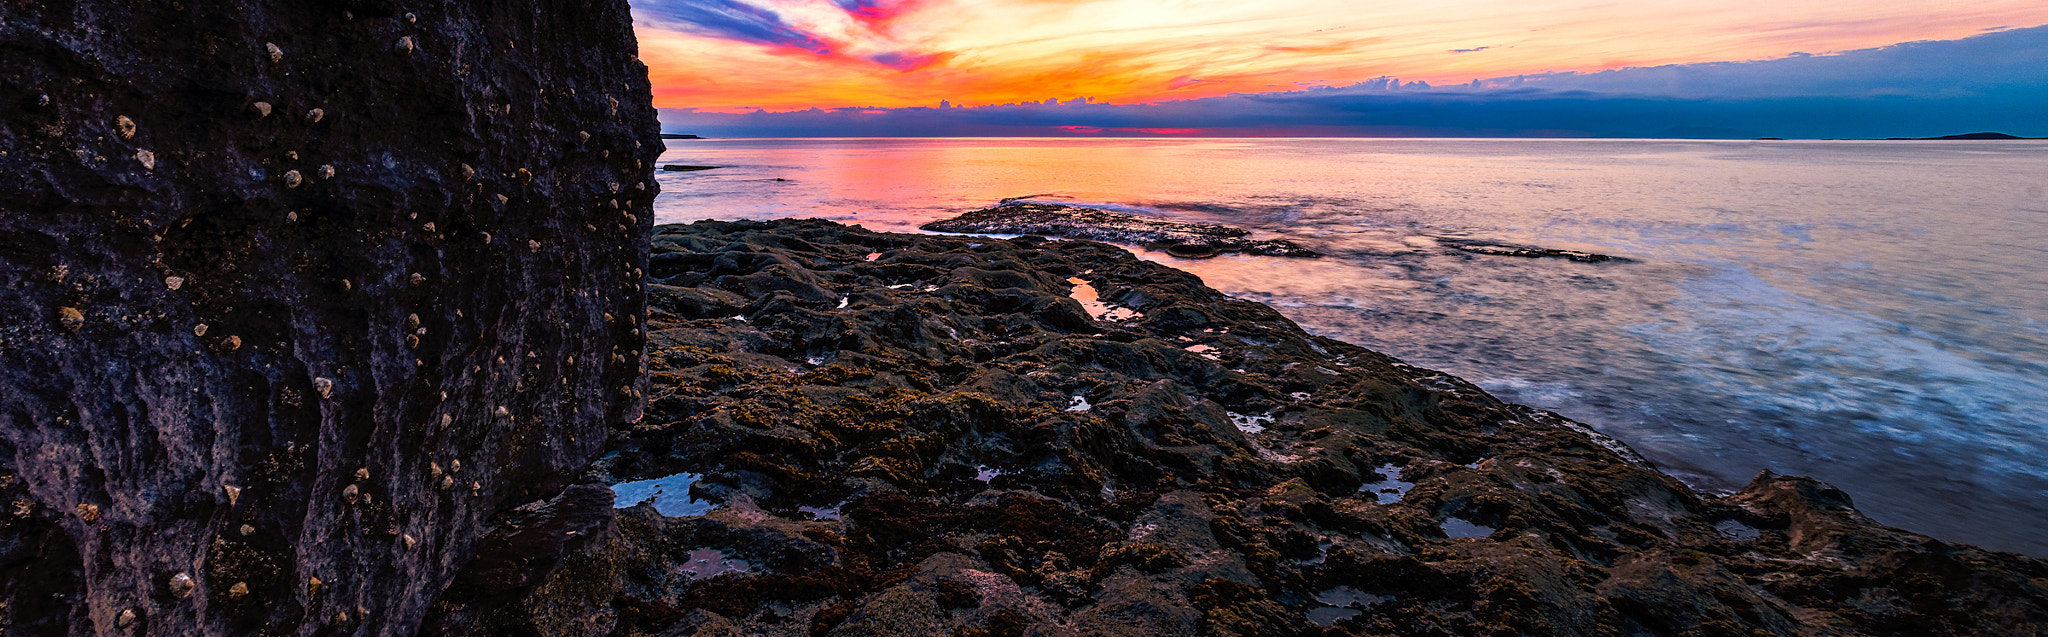 Photograph In The Rocks by Gavin Hartigan on 500px